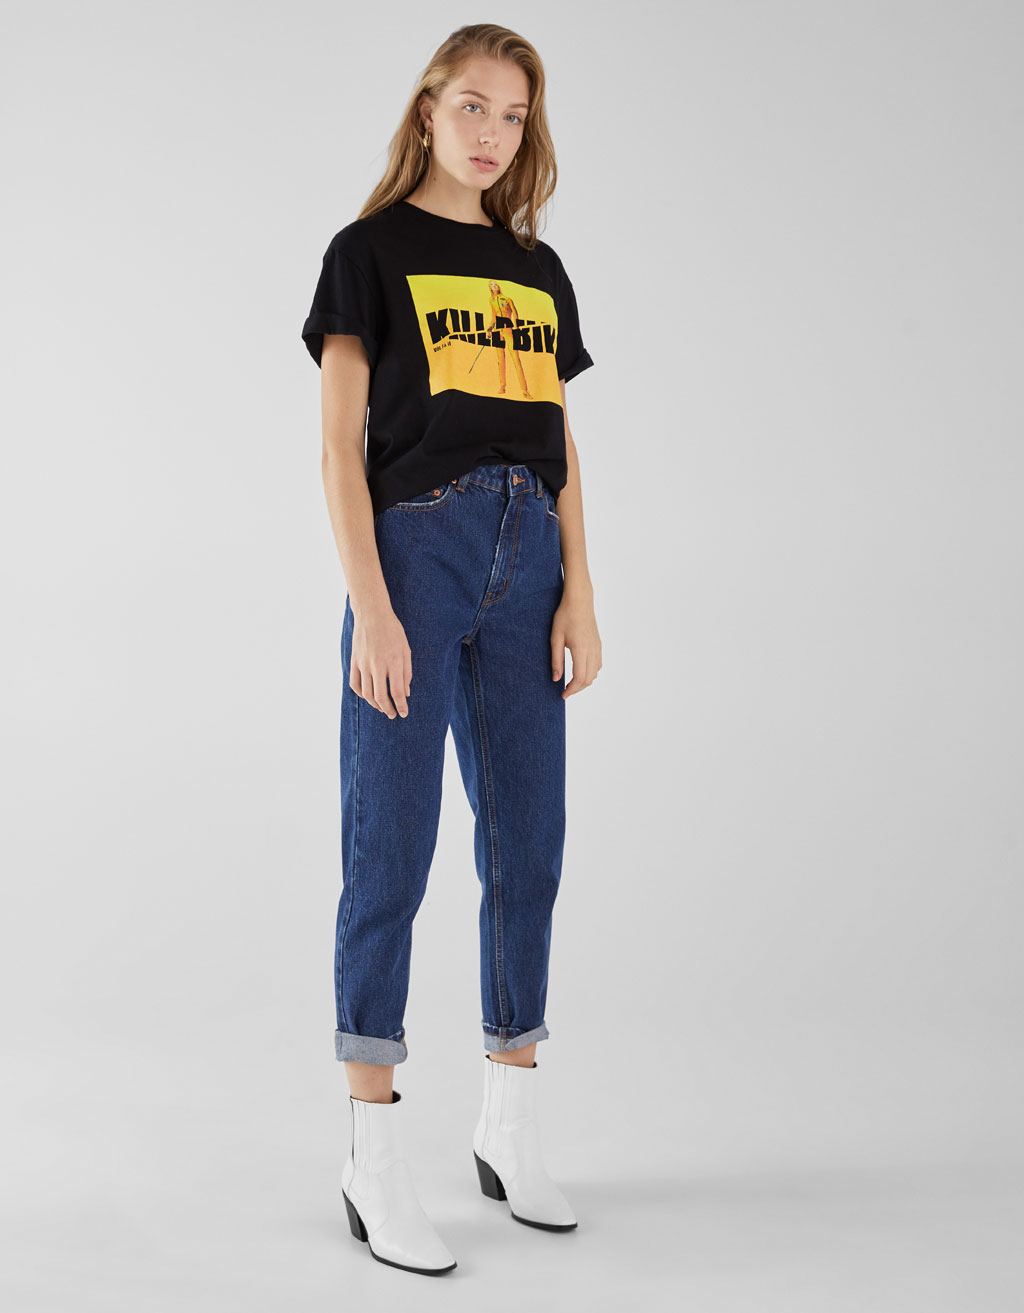 23345df57e2 Kill Bill T-shirt - With slogan - Bershka Serbia